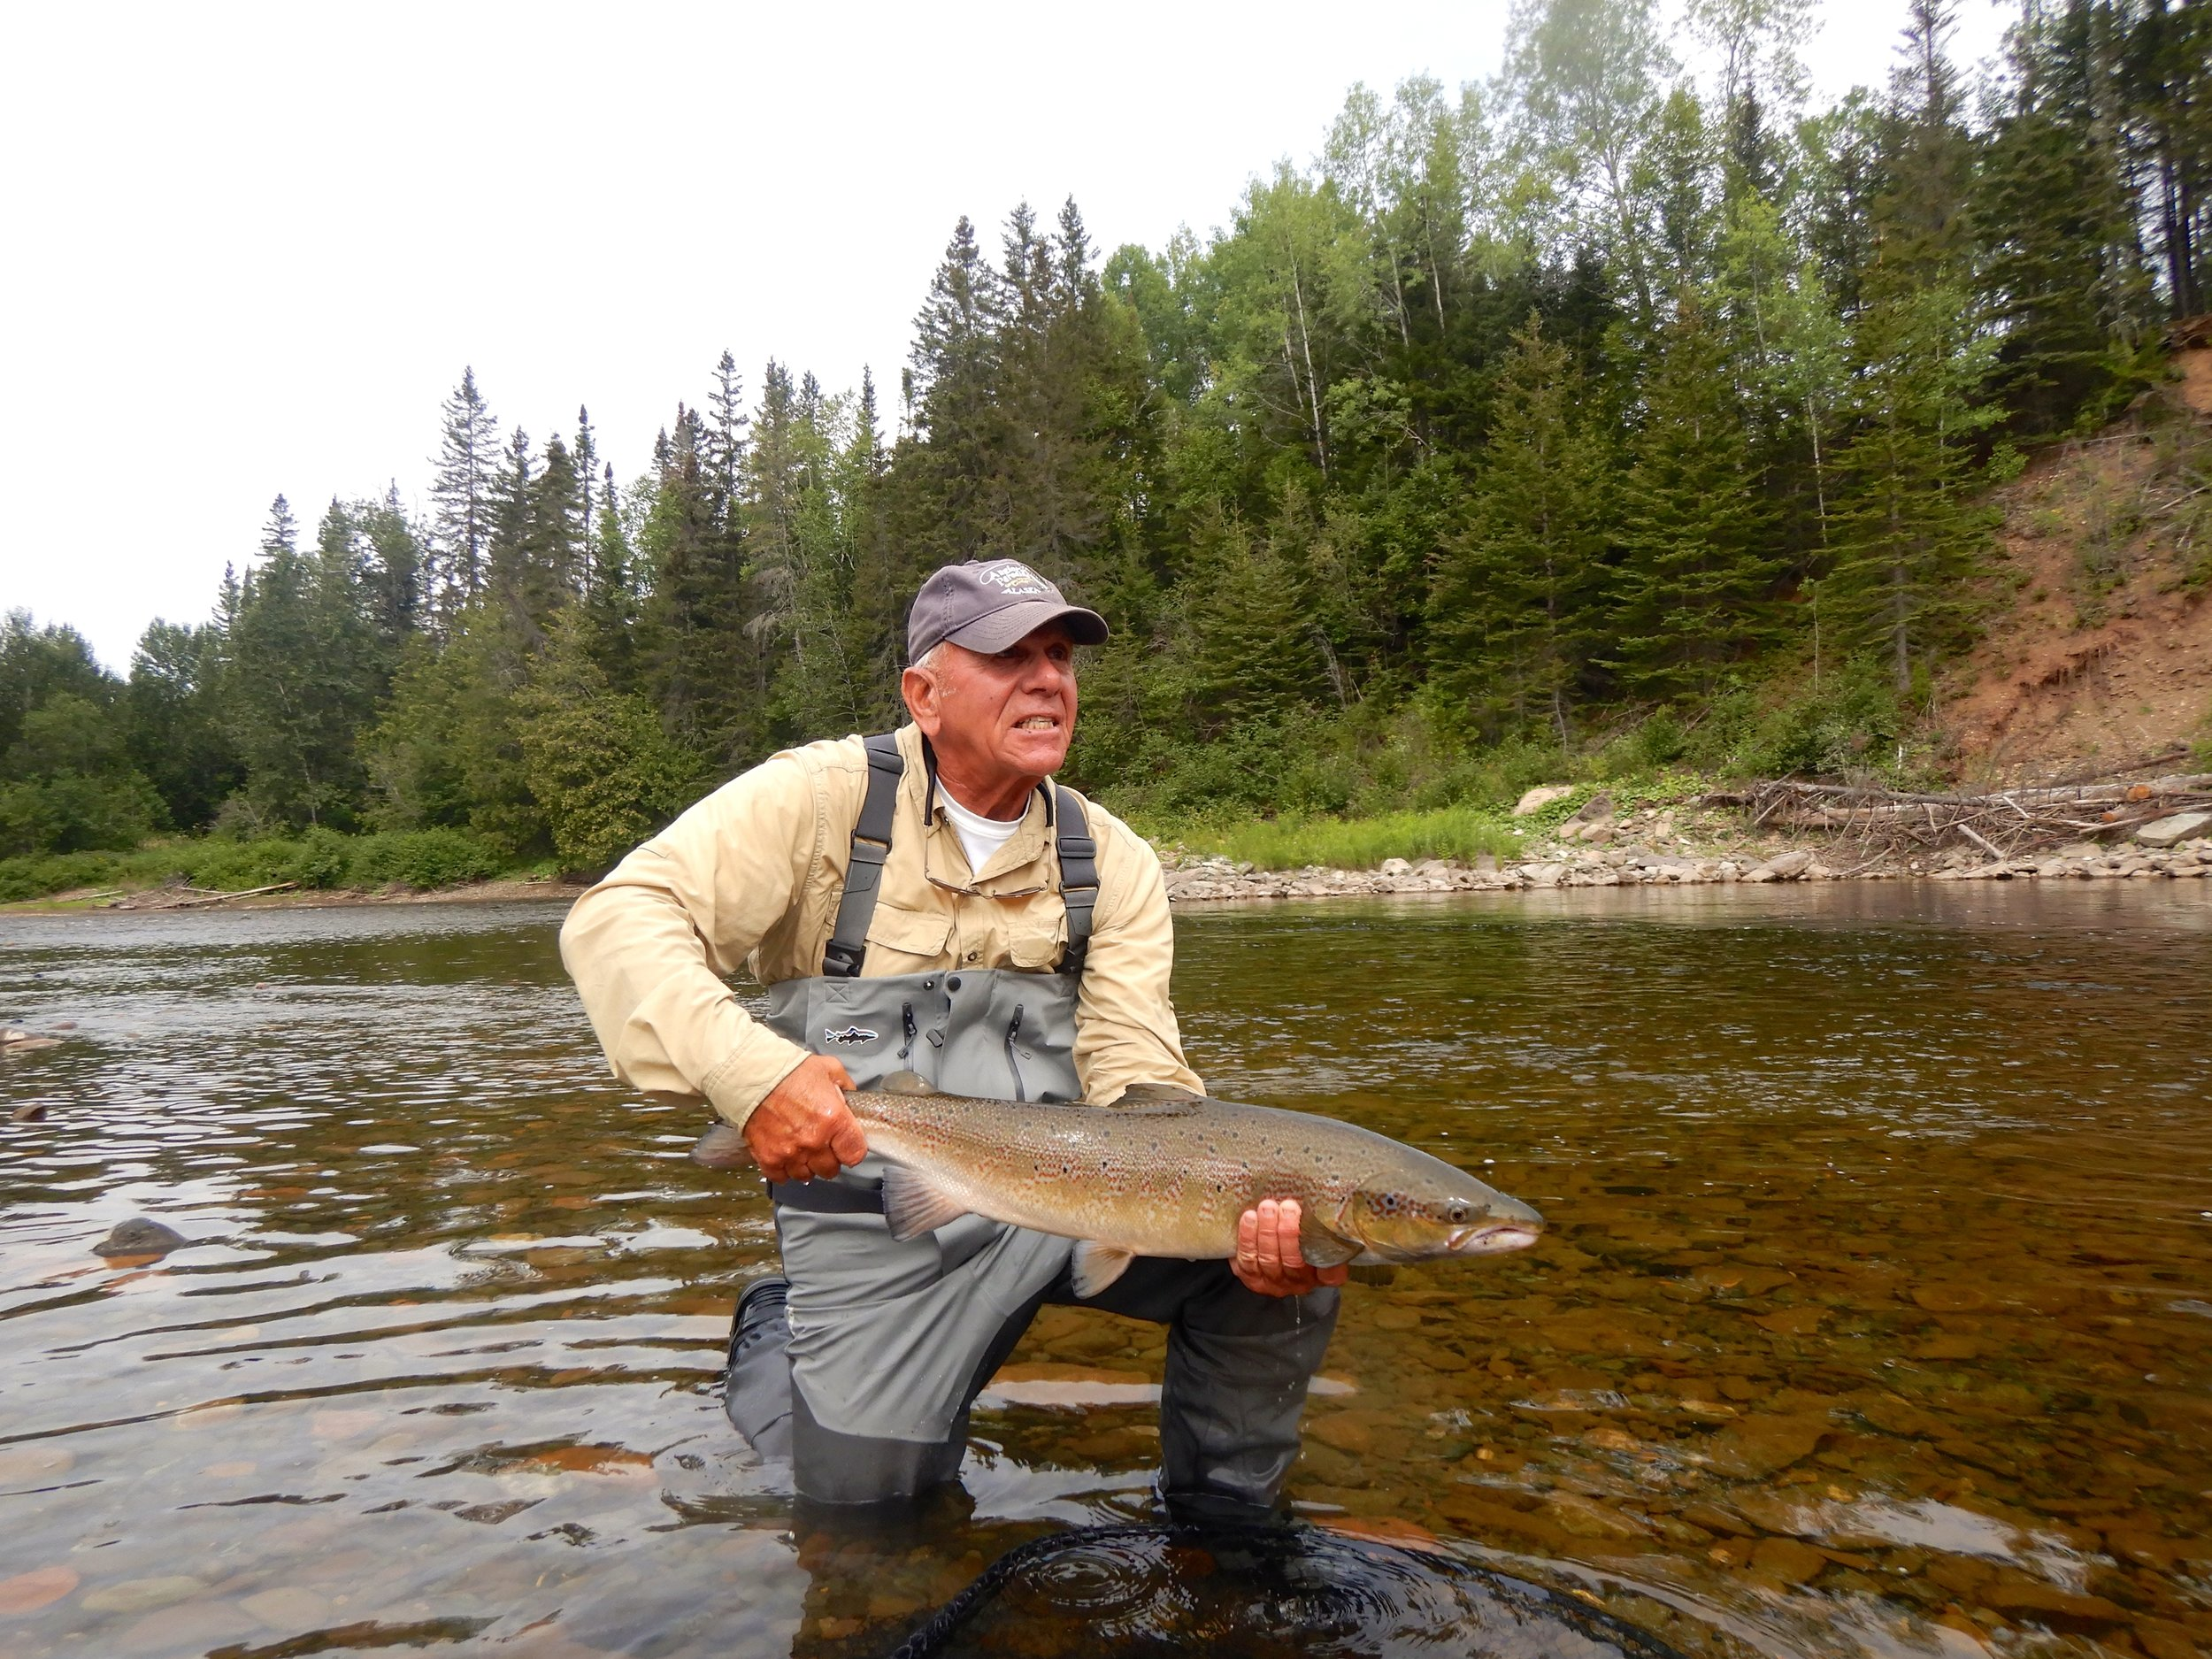 Barry Kutzen lands a beauty on the Branches of the Grand Cascapedia! Congrats Barry!